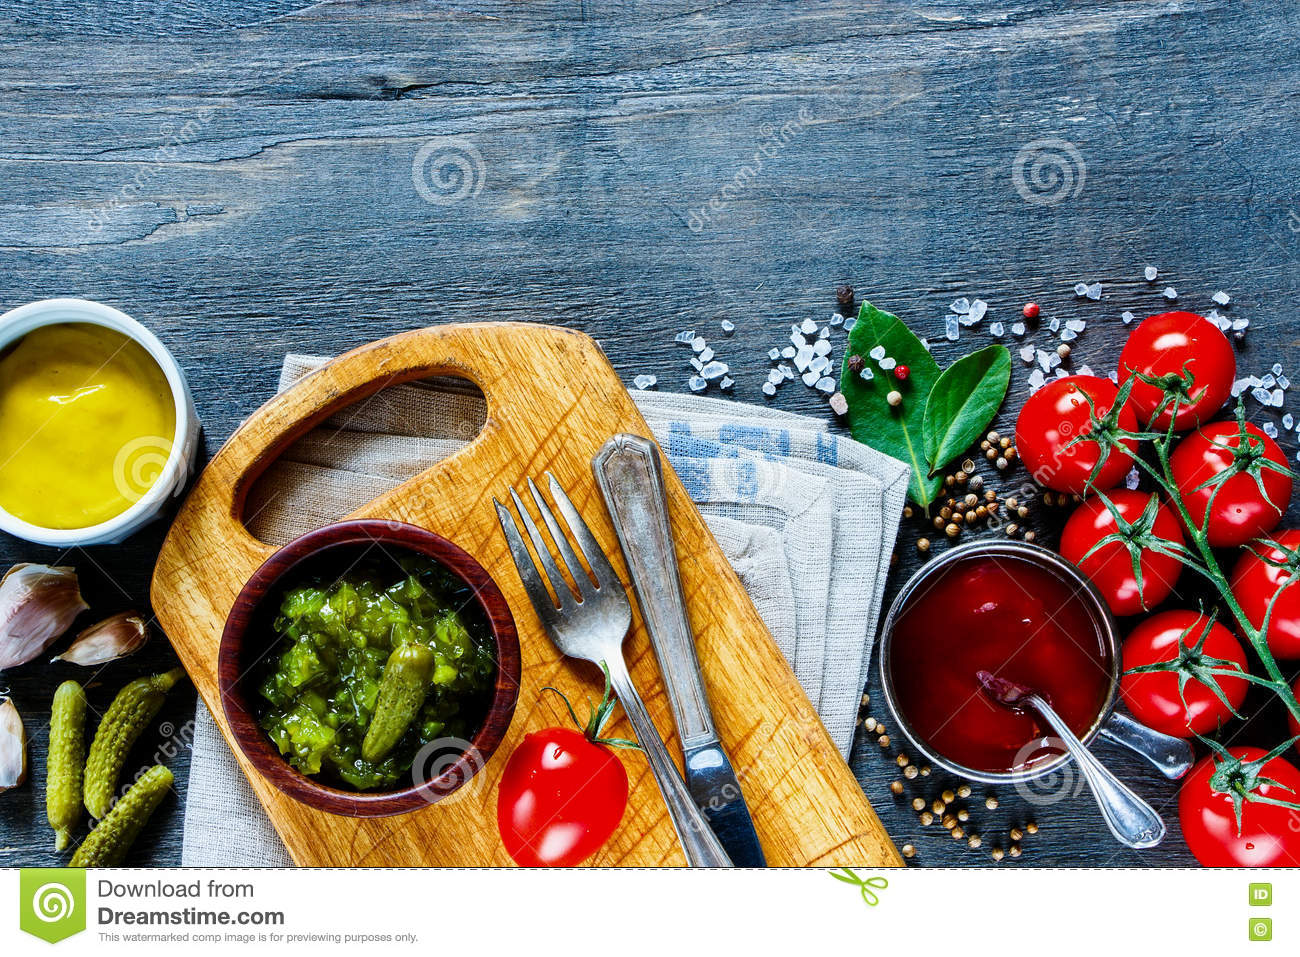 Sauces With Herbs And Spices Stock Image - Image of dried, different ...